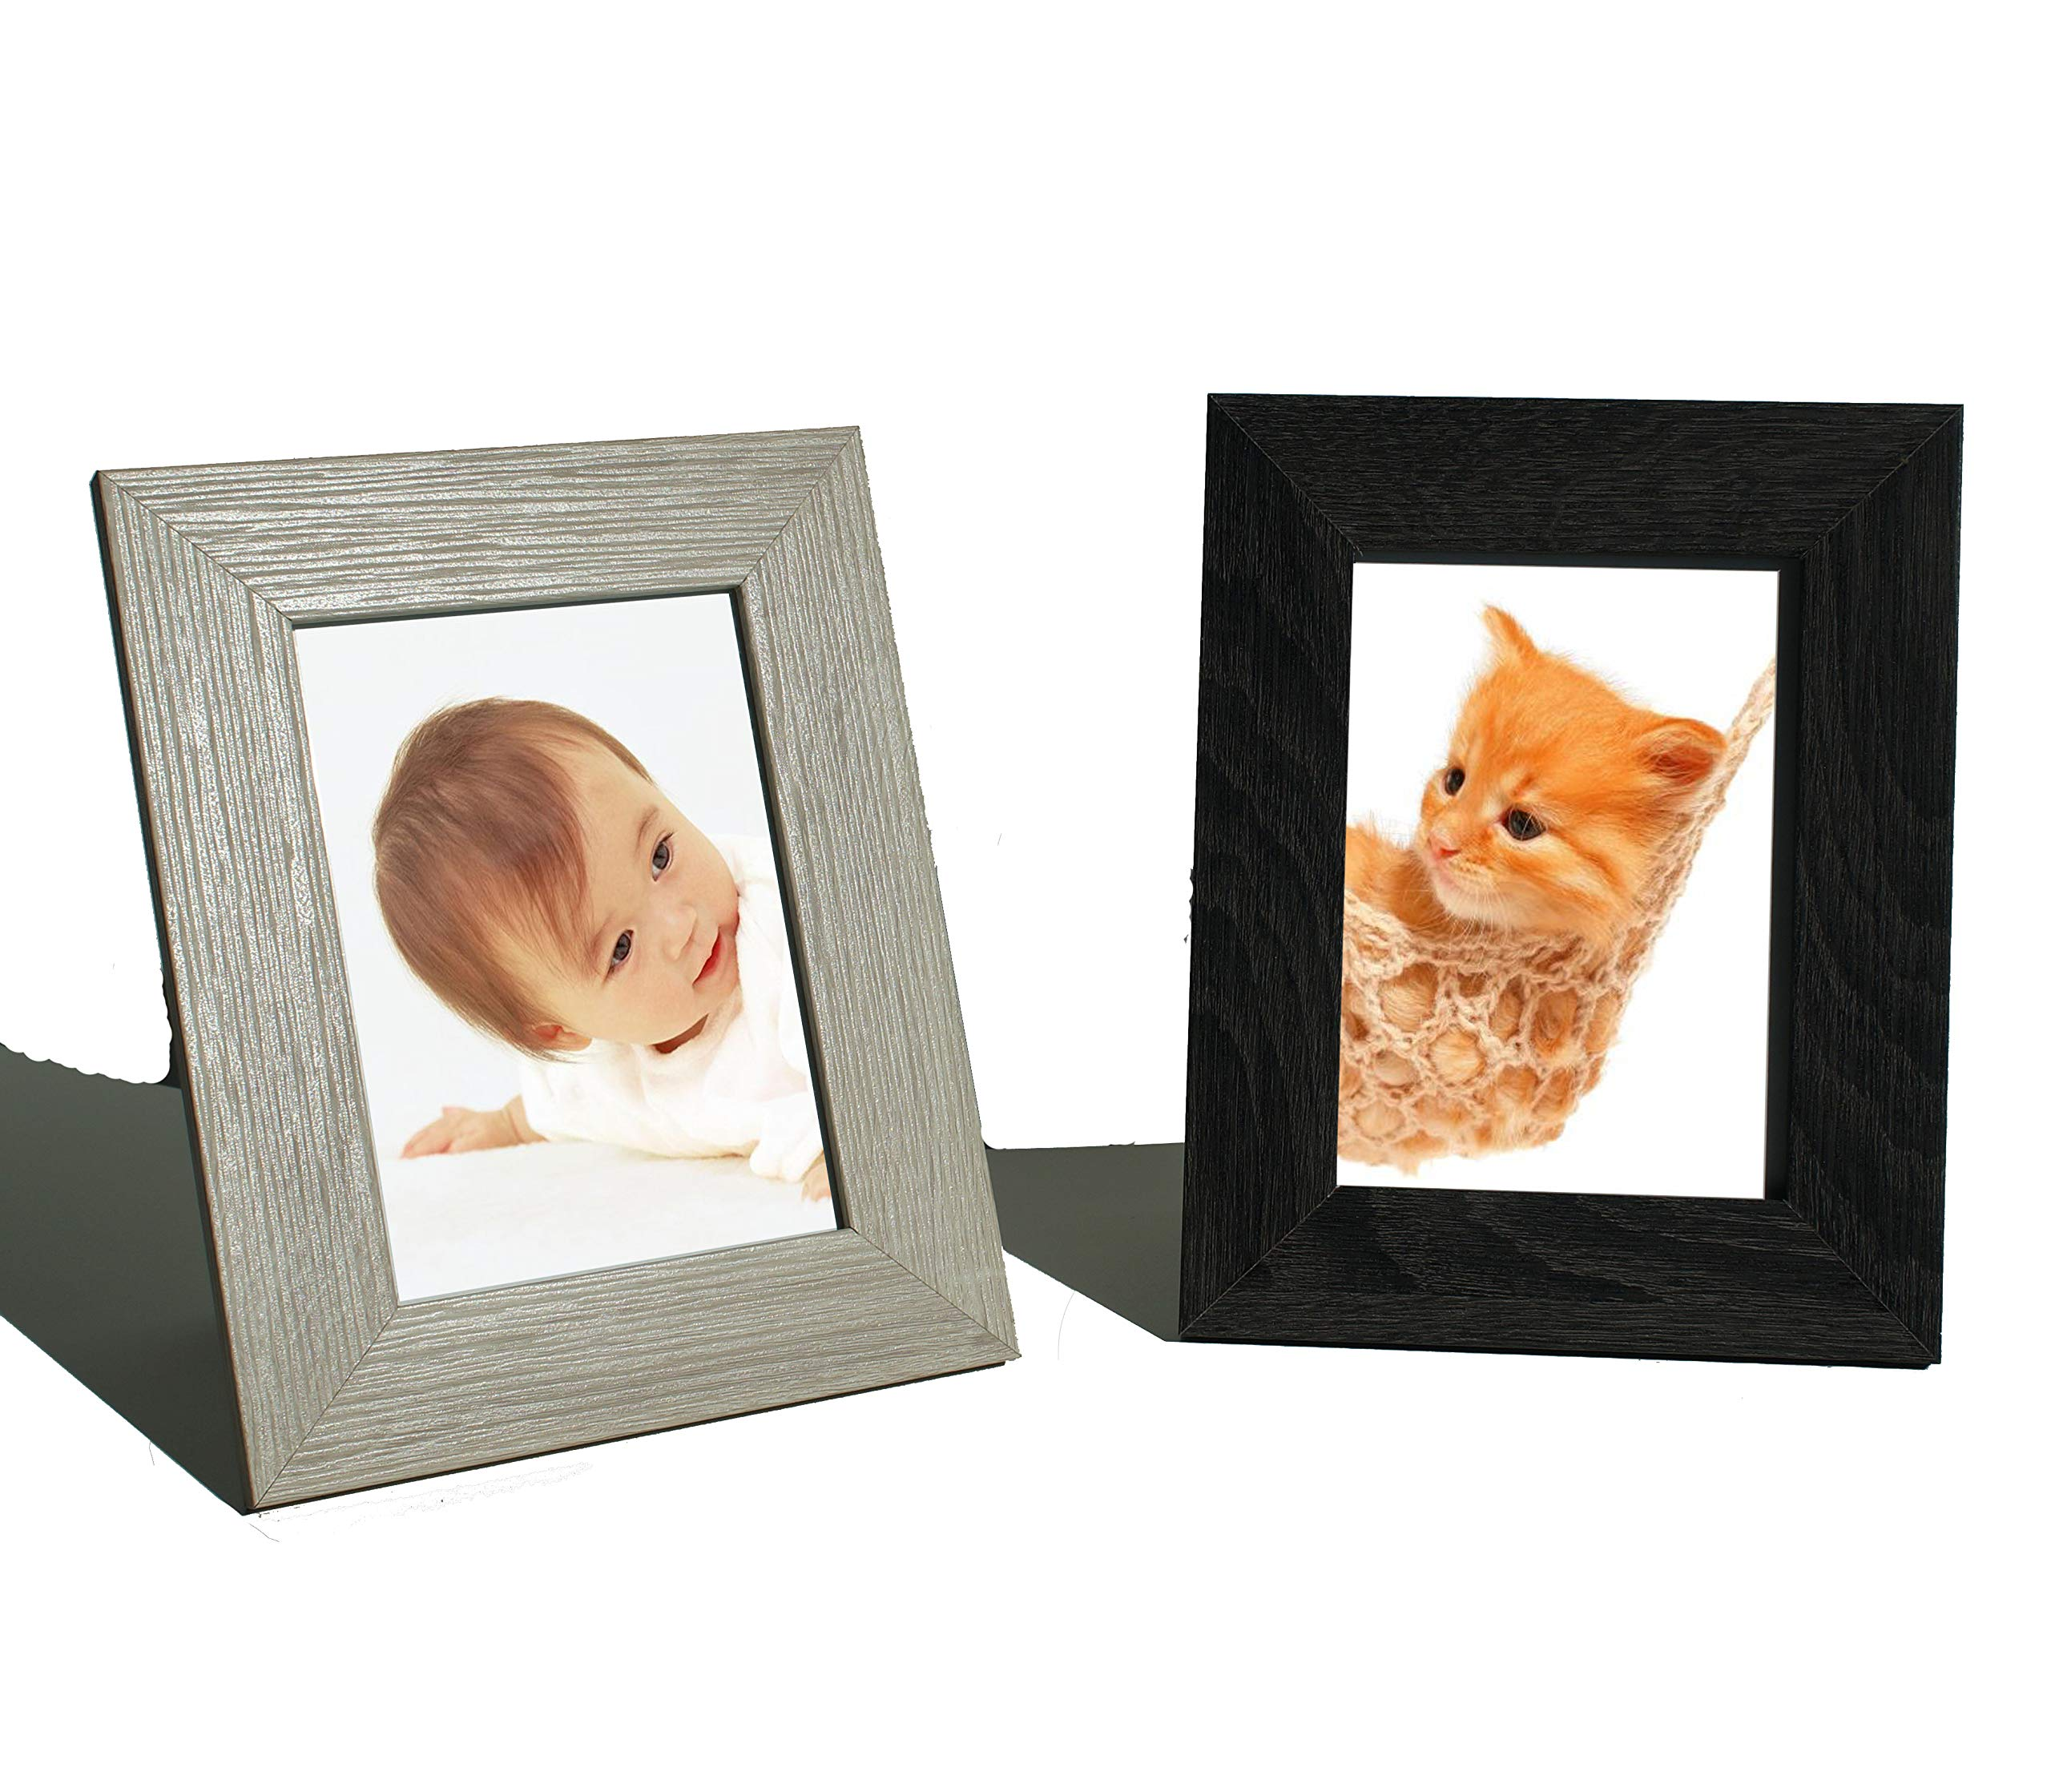 very nice picture frames